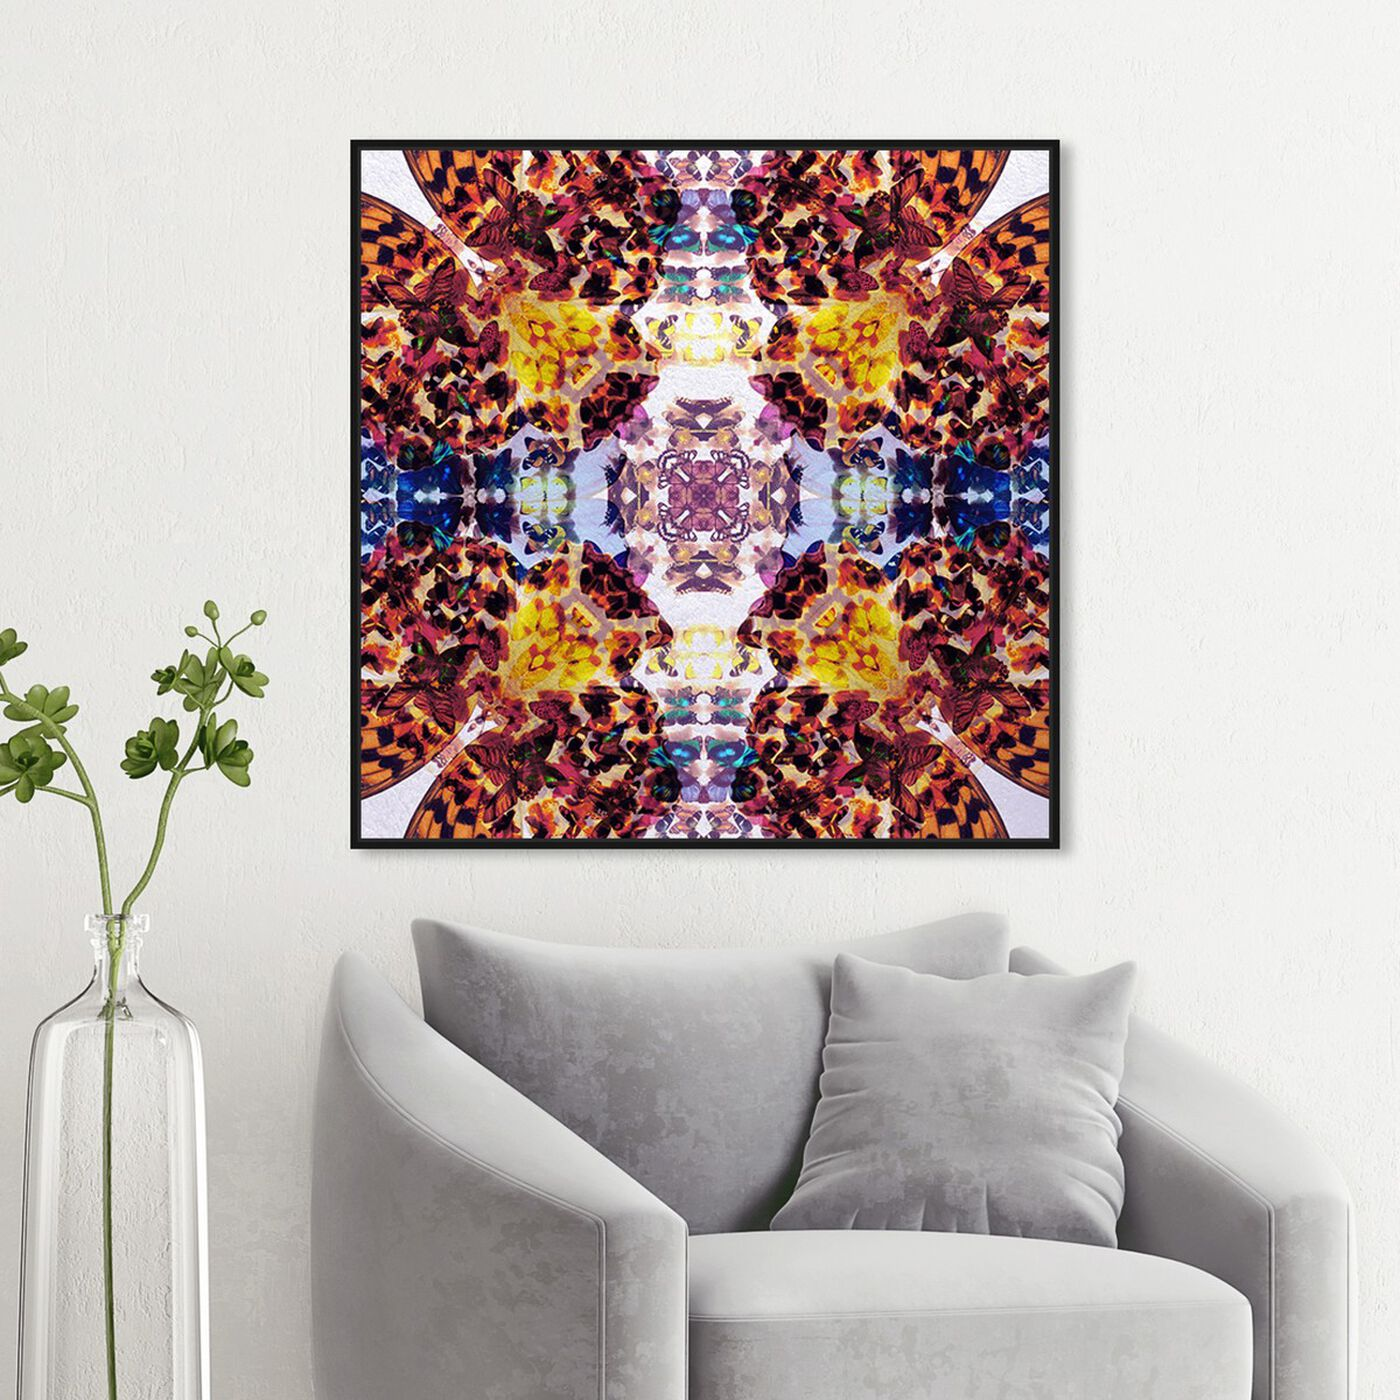 Hanging view of Tiger Winged featuring abstract and patterns art.